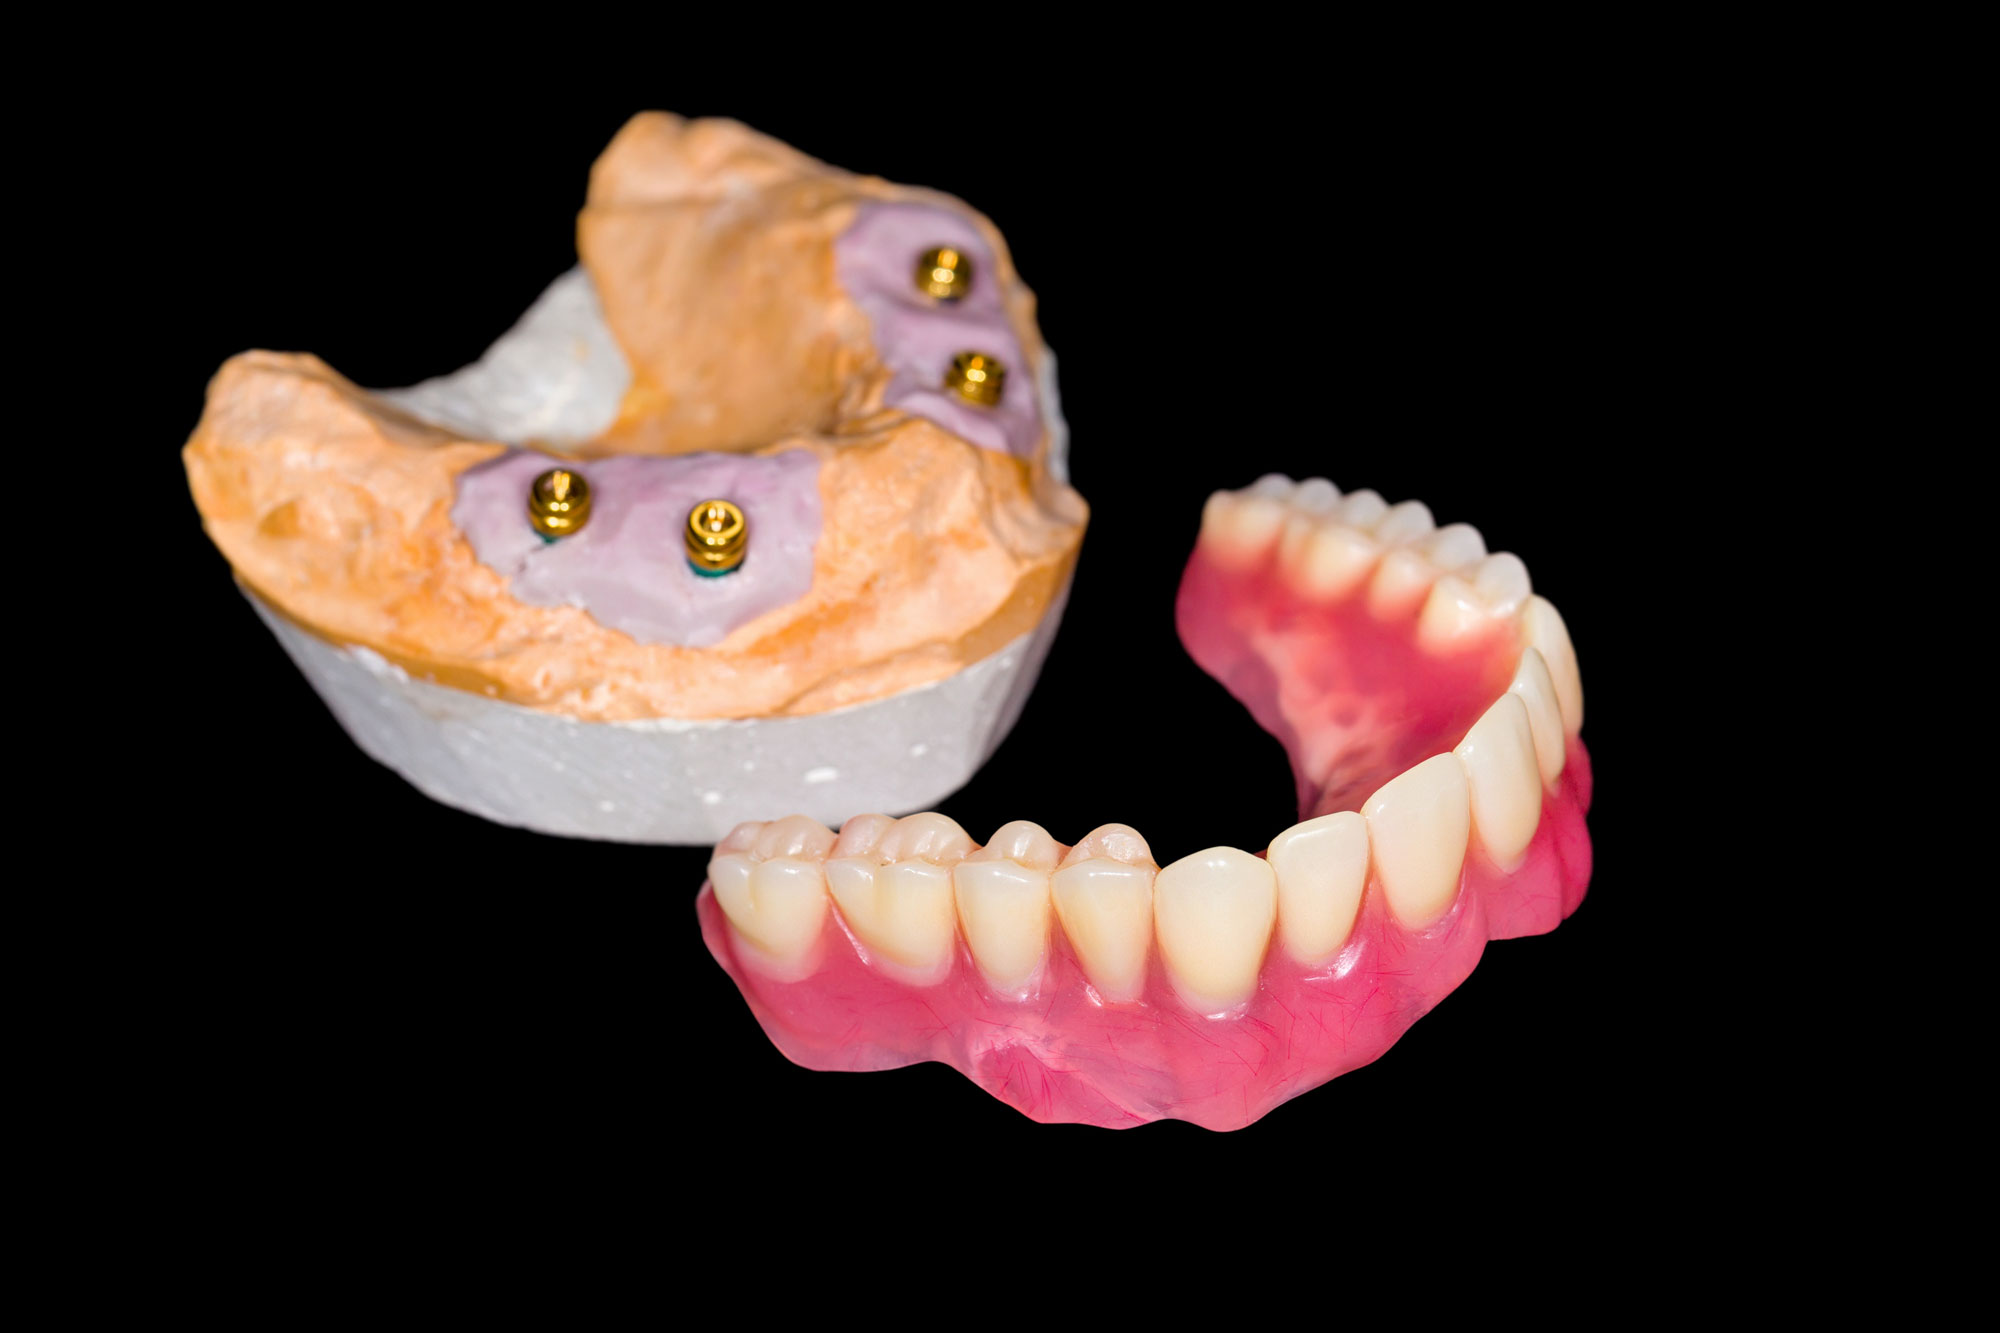 Removable full-row implant in case of total loss of teeth